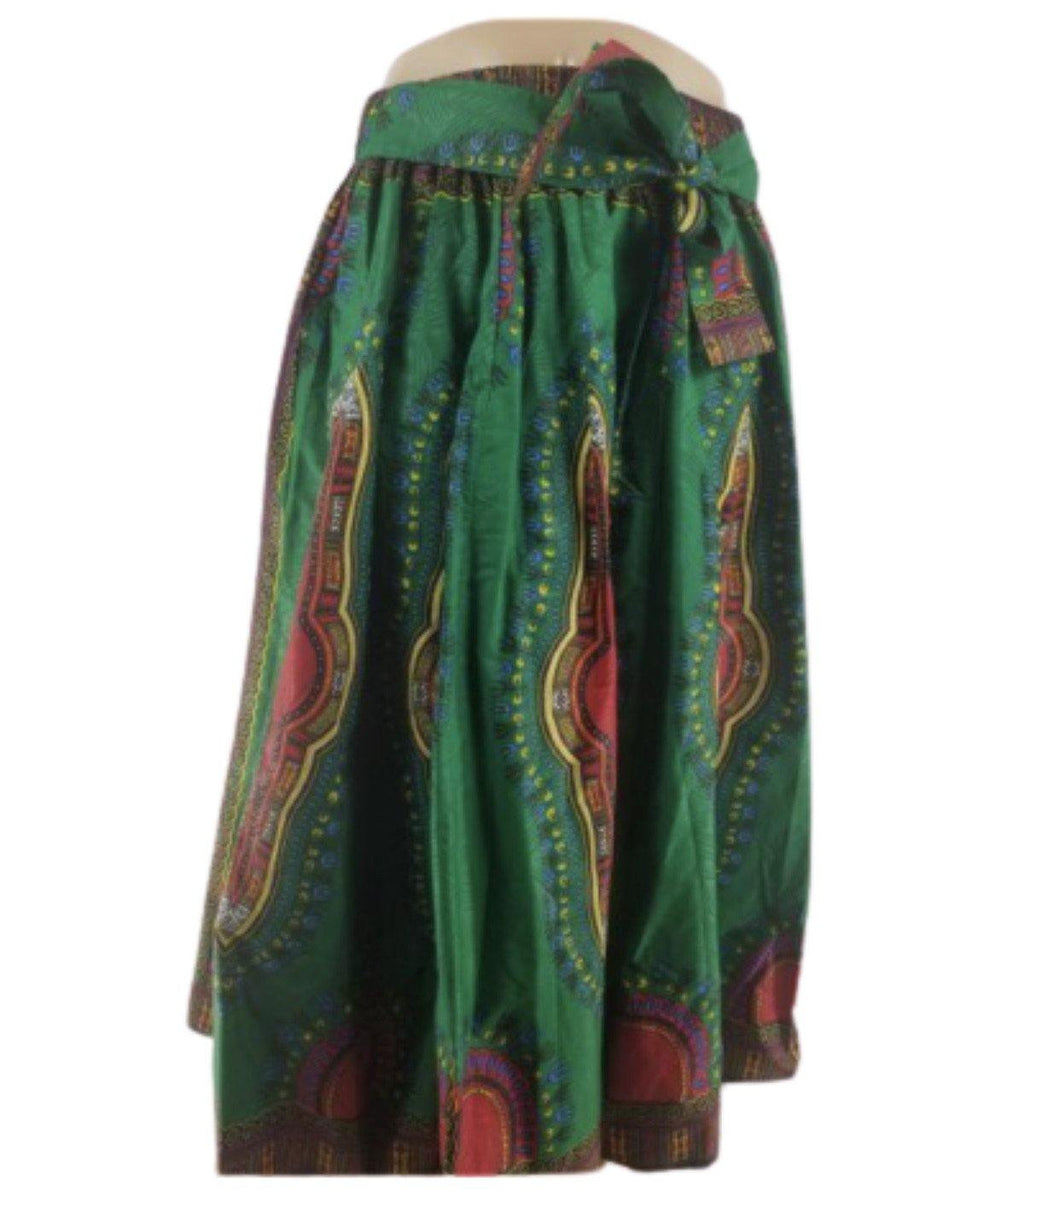 GREEN DASHIKI PRINT ANKARA MAXI SKIRT